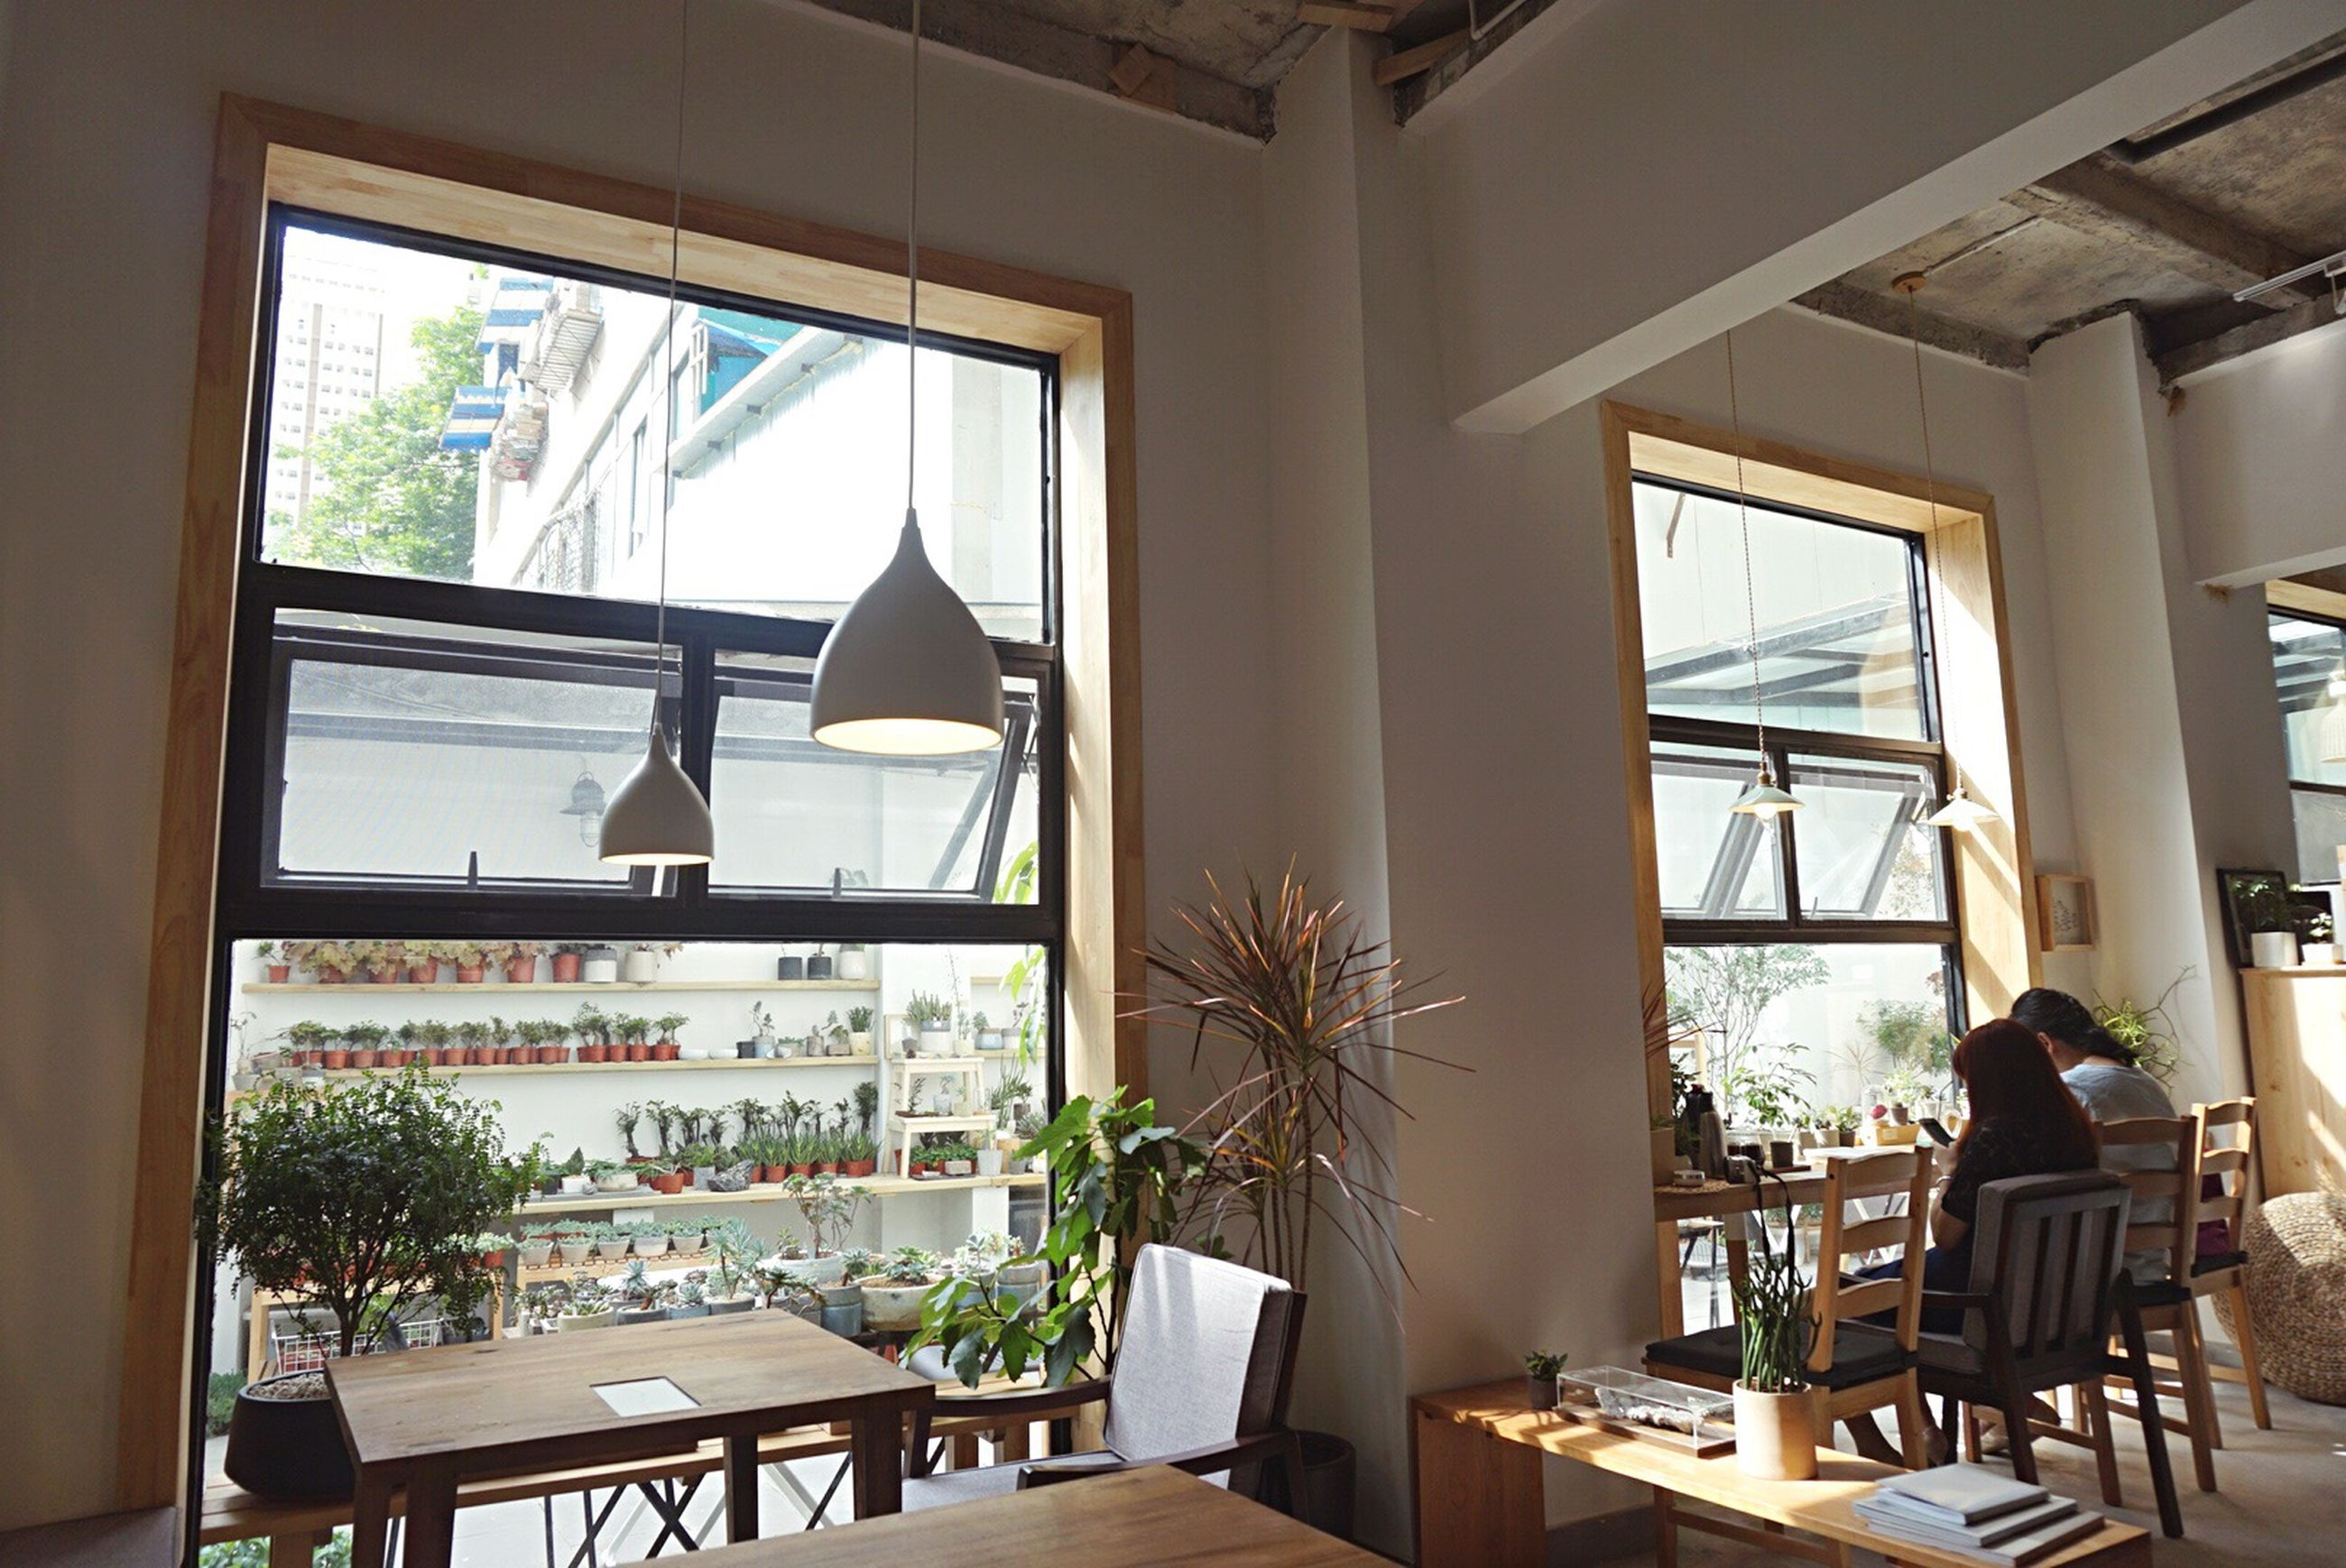 indoors, window, chair, glass - material, table, transparent, home interior, curtain, architecture, built structure, absence, potted plant, restaurant, house, balcony, day, empty, sunlight, glass, domestic room